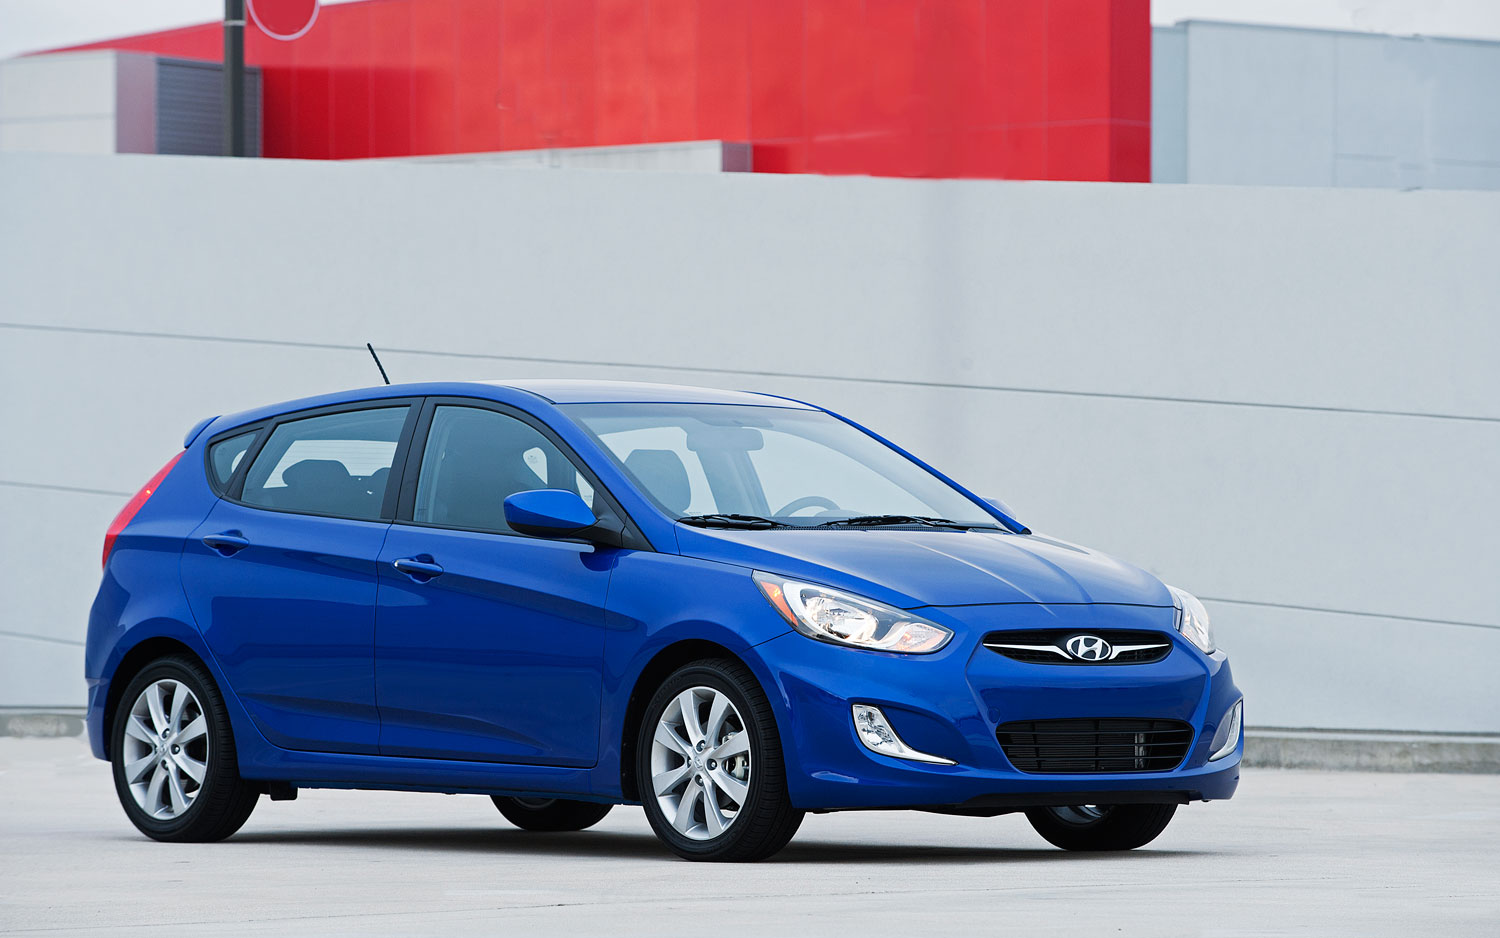 2012 Hyundai Accent  First Drive  Automobile Magazine